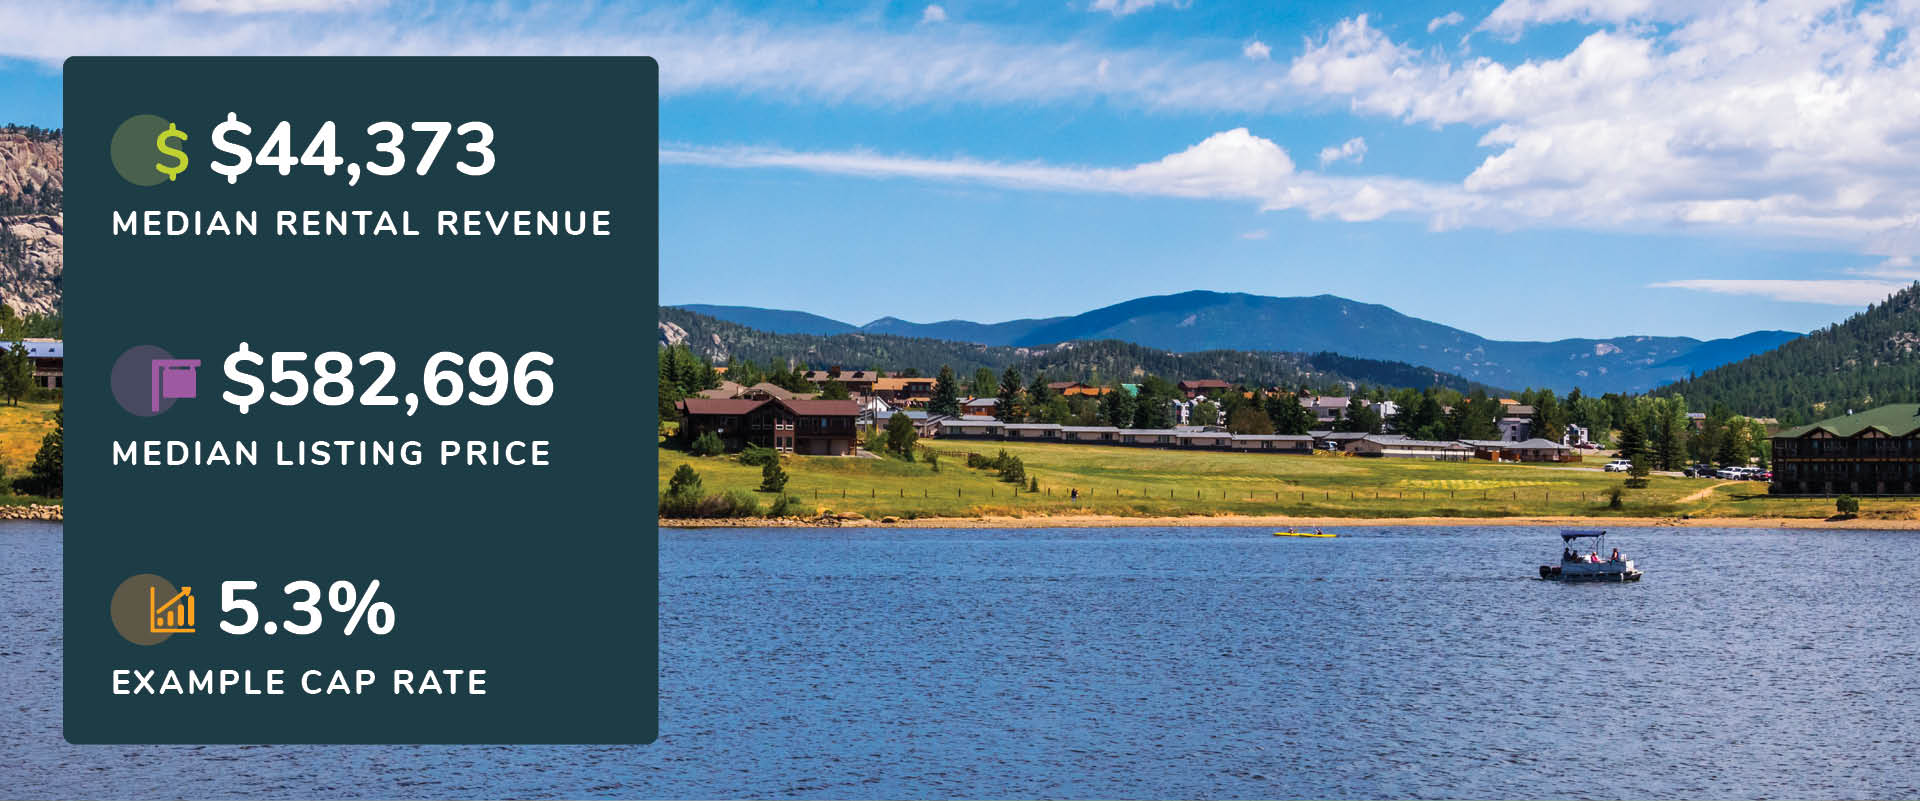 Graphic showing Grand Lake, Colorado rental revenue, listing price, and cap rate with a picture of a pontoon boat on Grand Lake with mountain views